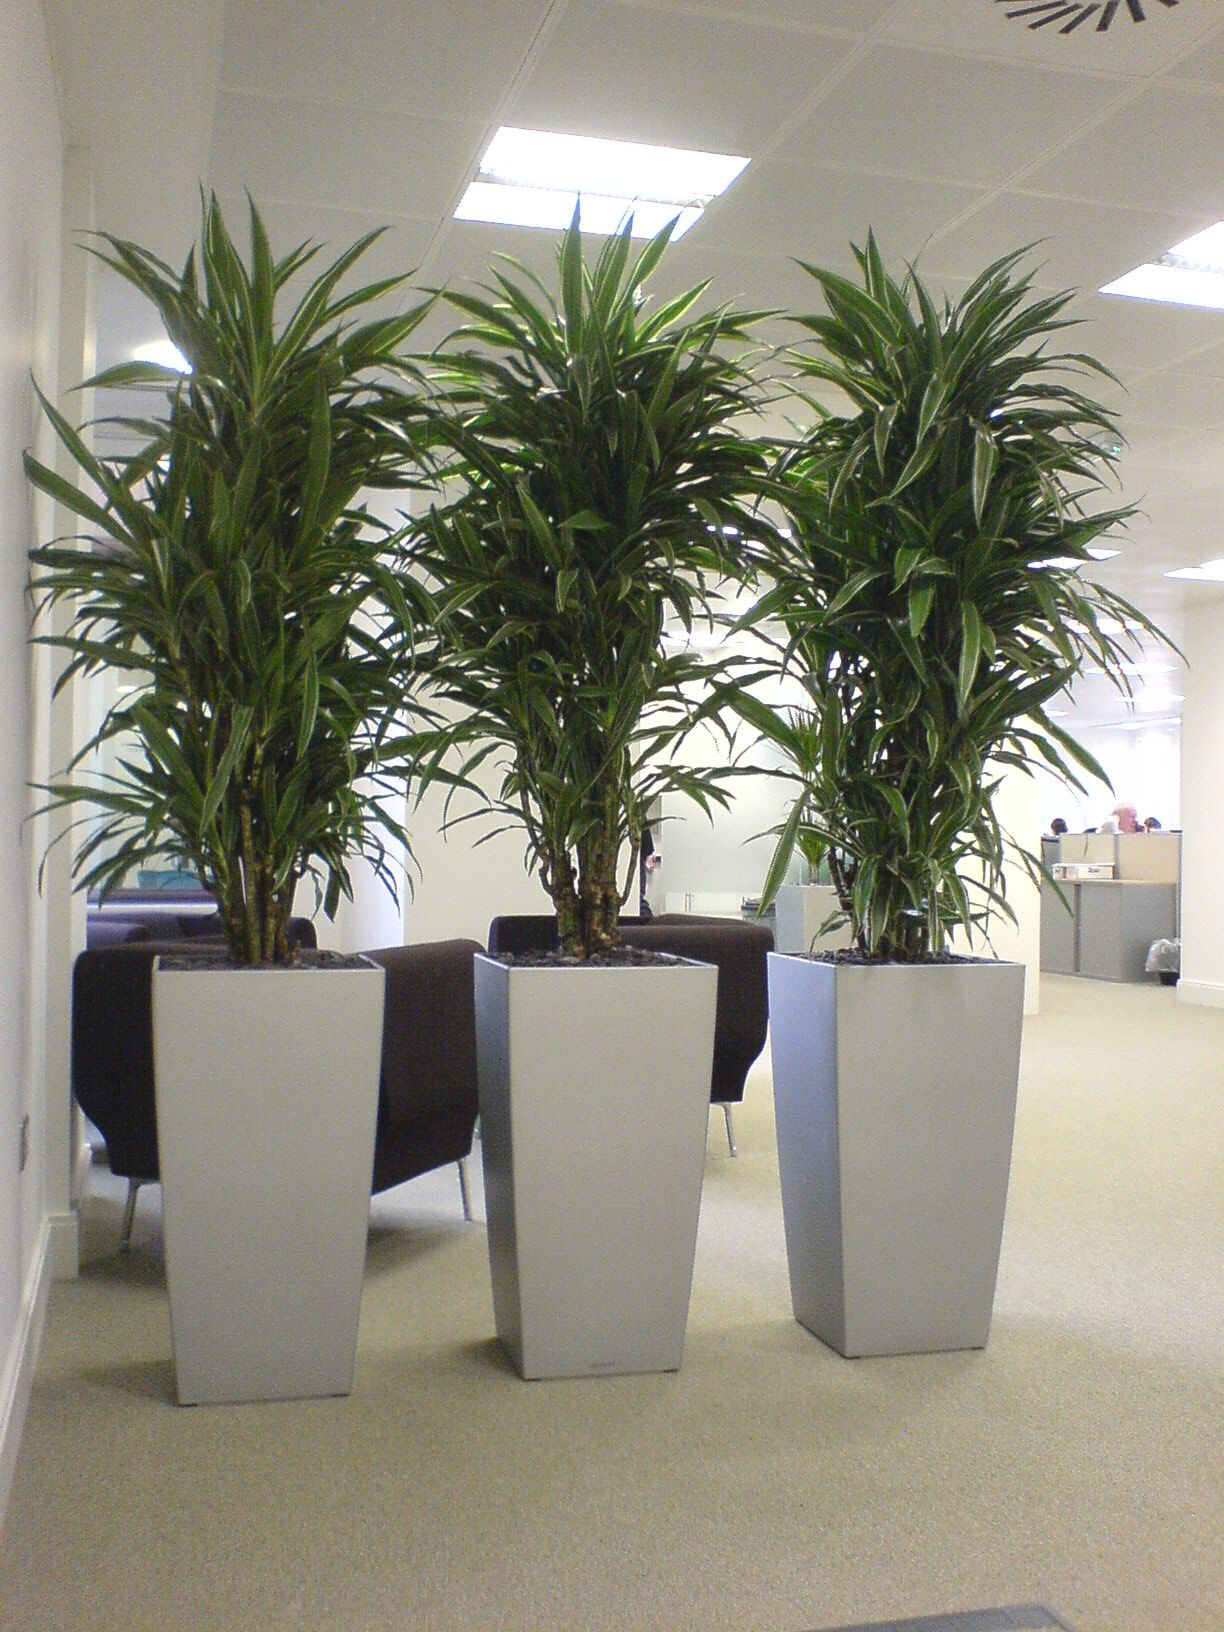 inspiration tall indoor house plants. Division psychologique et zen Cool Dracaena plants in silver cubico lechuza  planters great for low lighting office Warneckii used as a screen very practical